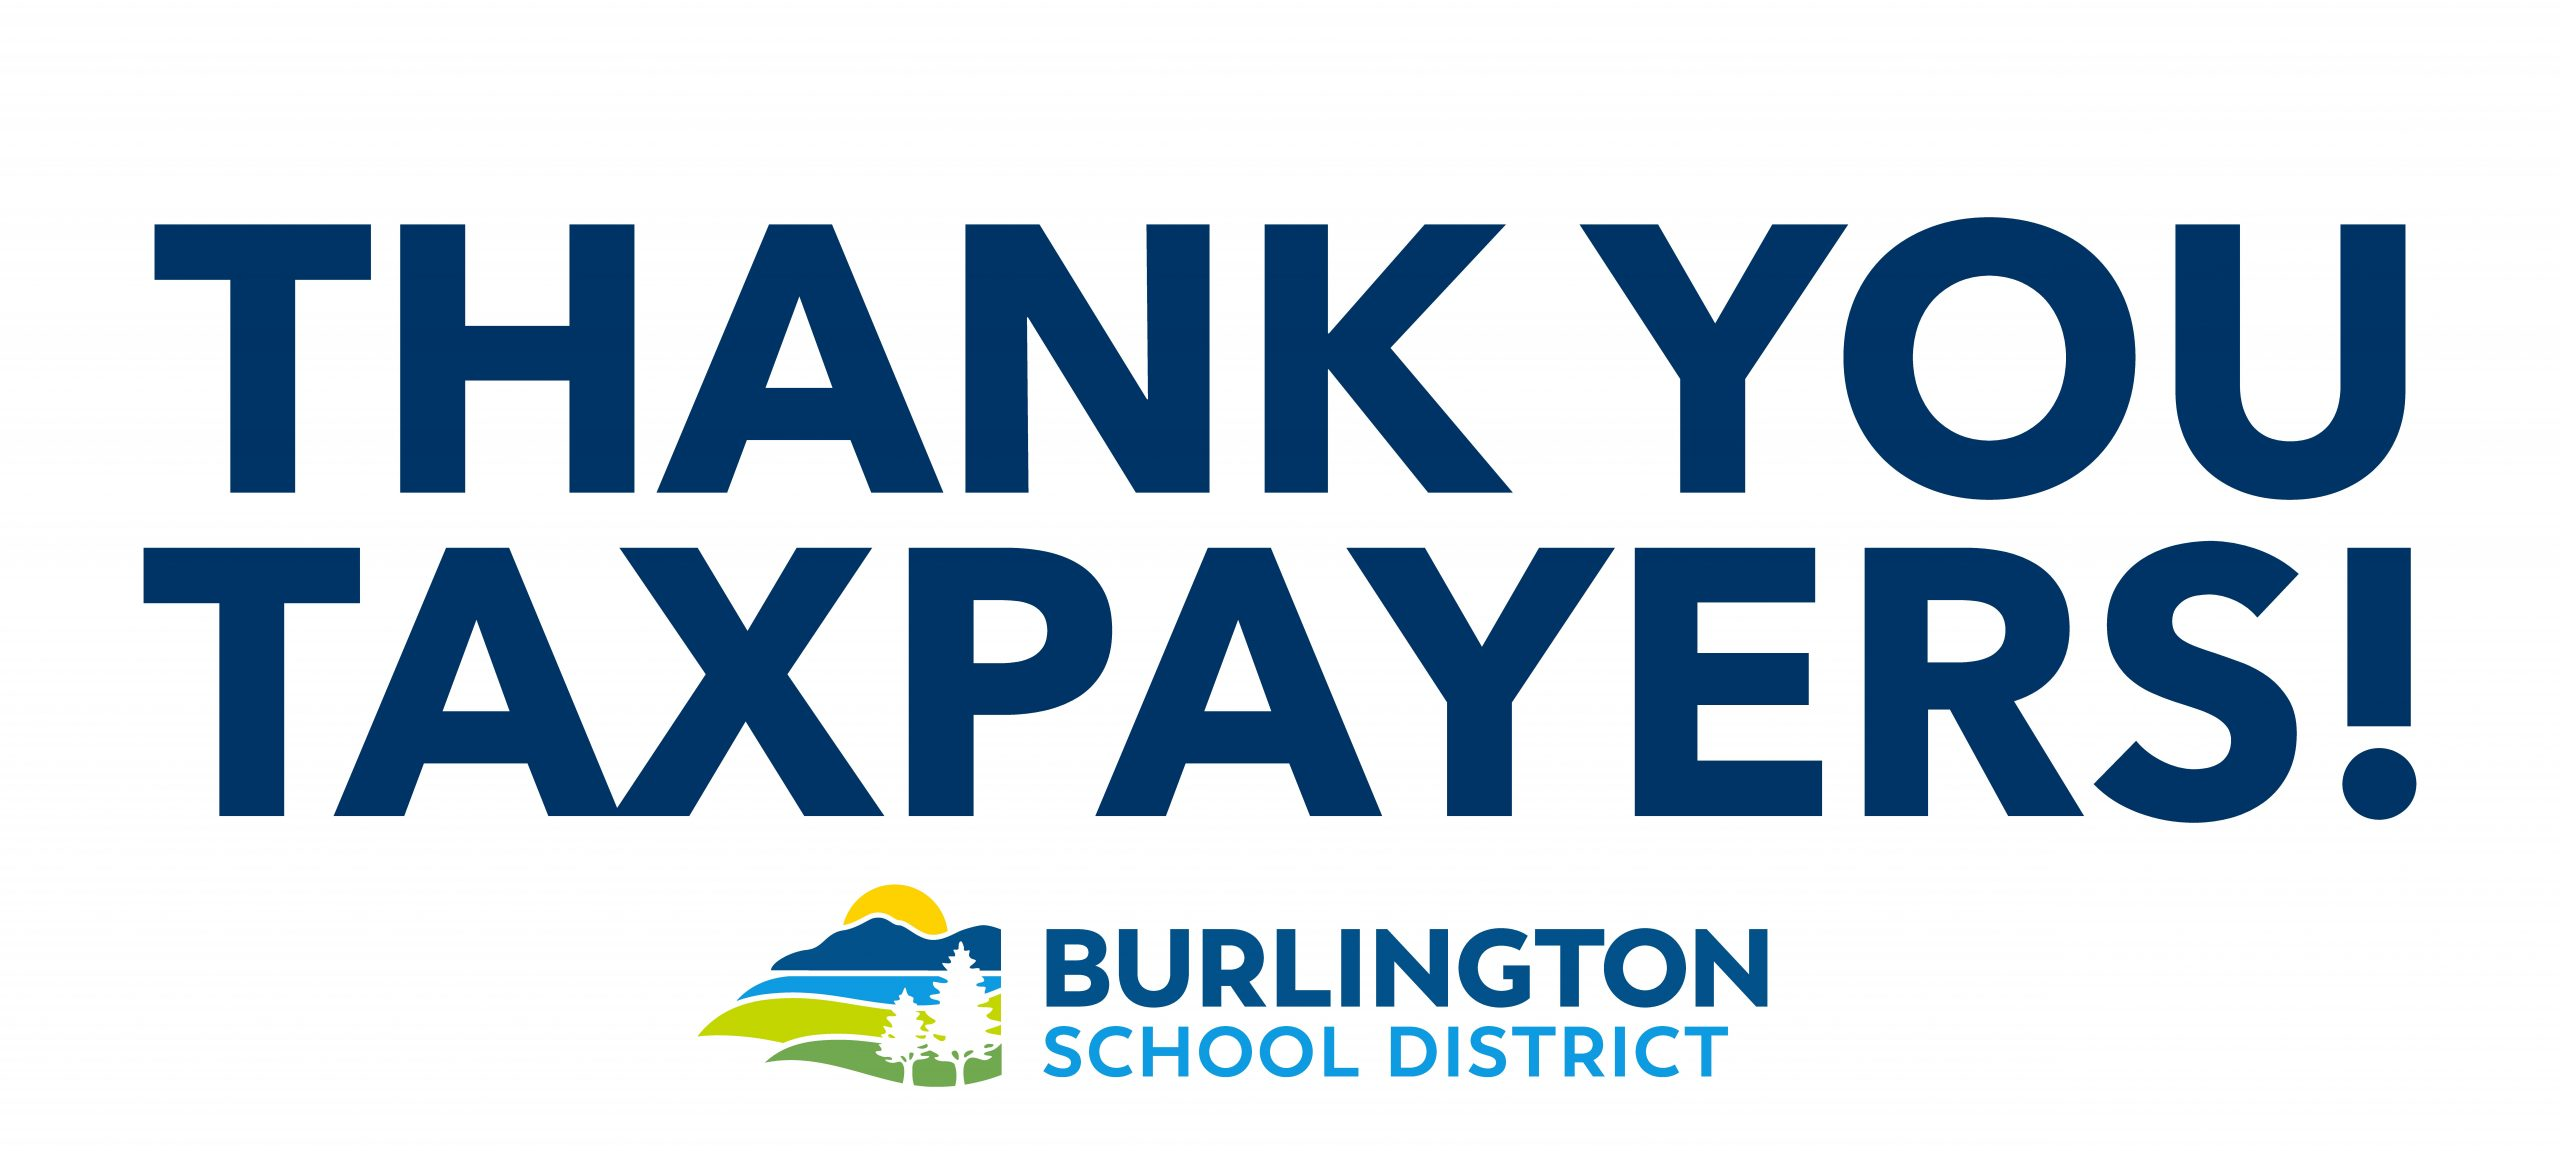 Thank You Taxpayers